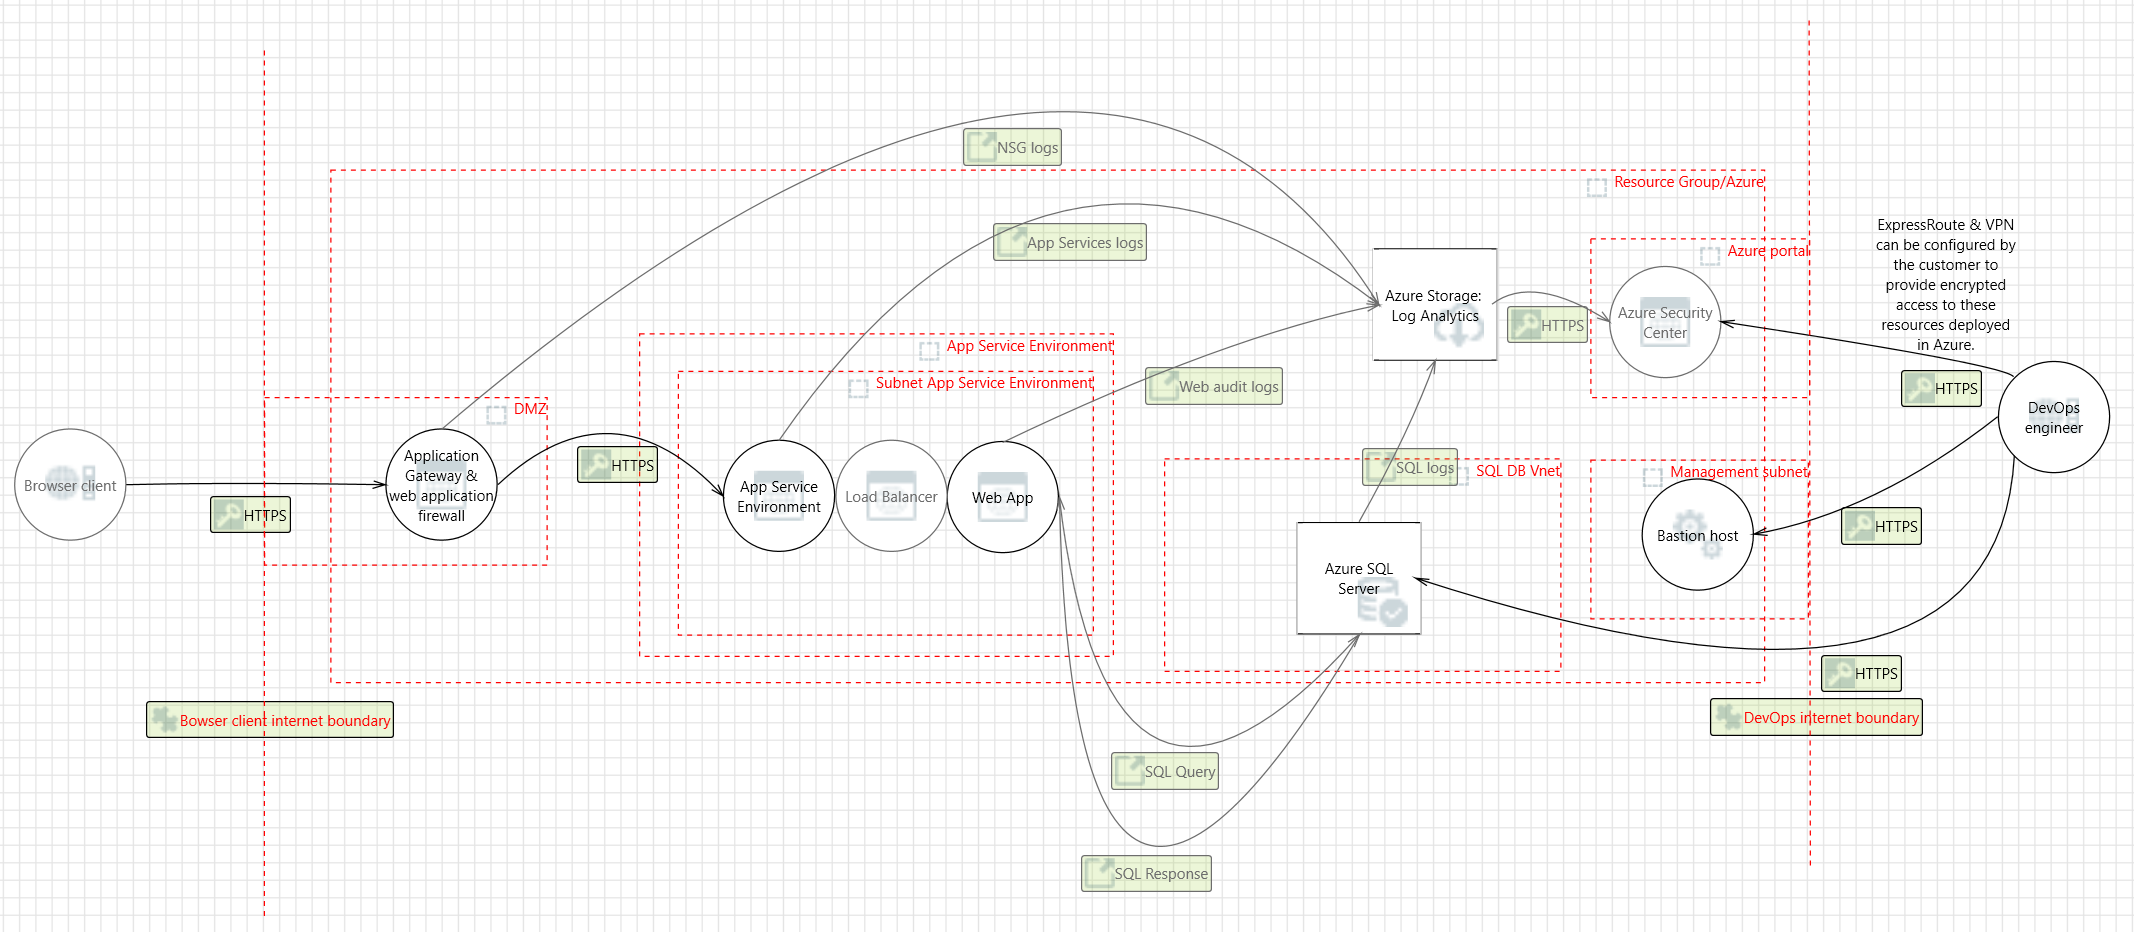 Azure Security and Compliance Blueprint - PaaS Web Application for